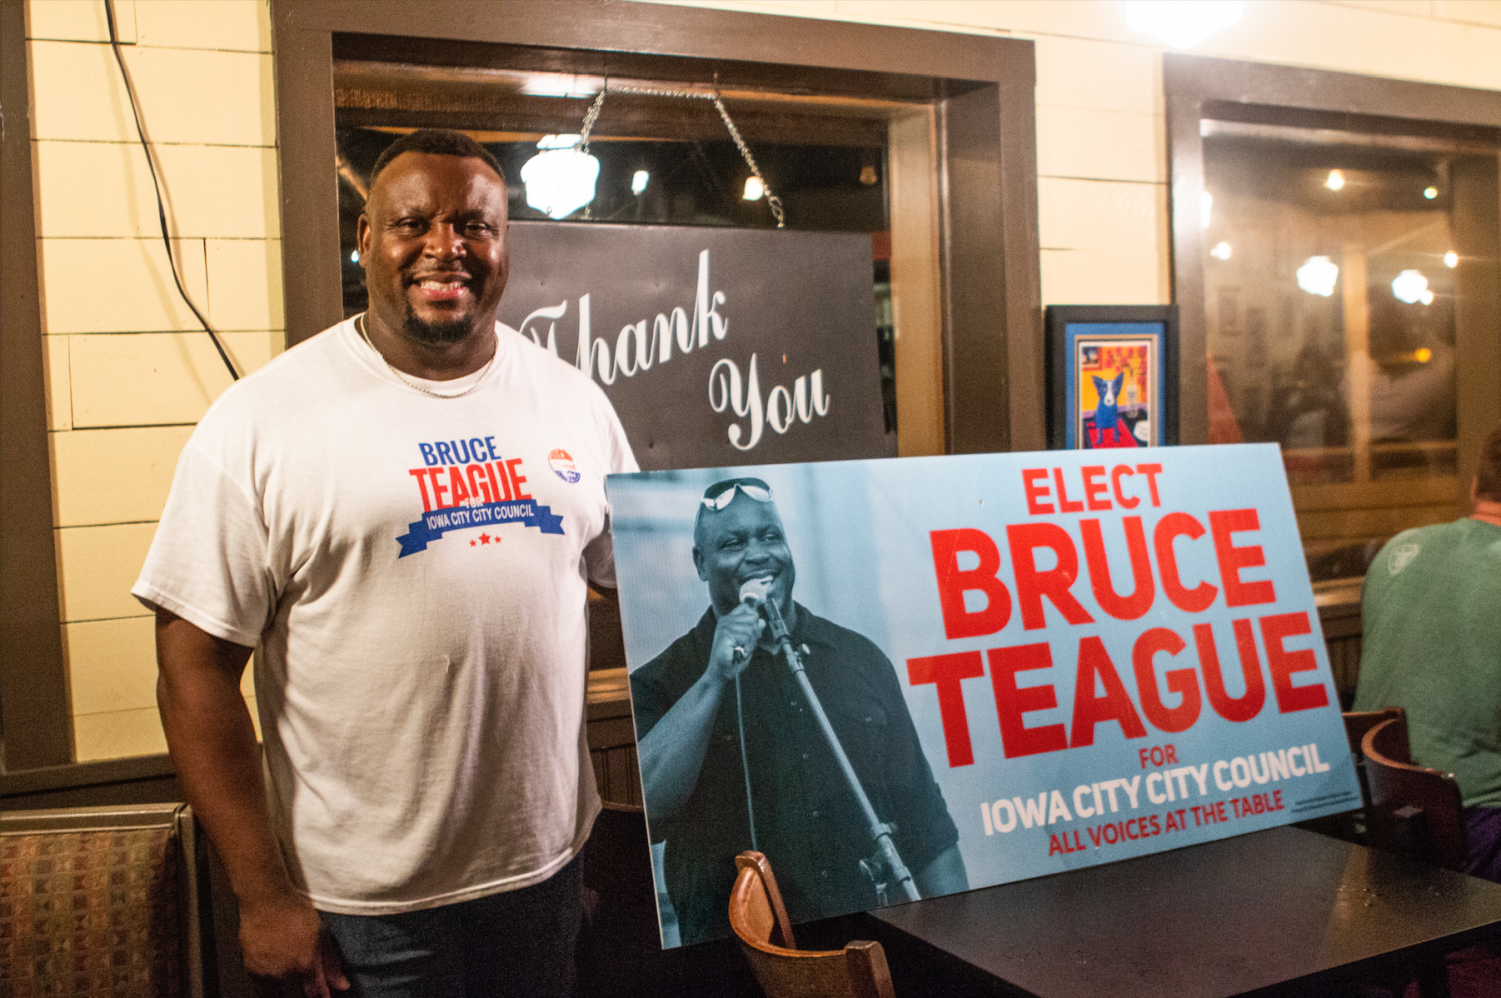 City Council candidate Bruce Teague stands by his election sign at Billy's High Hat Diner on Tuesday, September 4, 2018. Teague received the second highest number of votes overall.